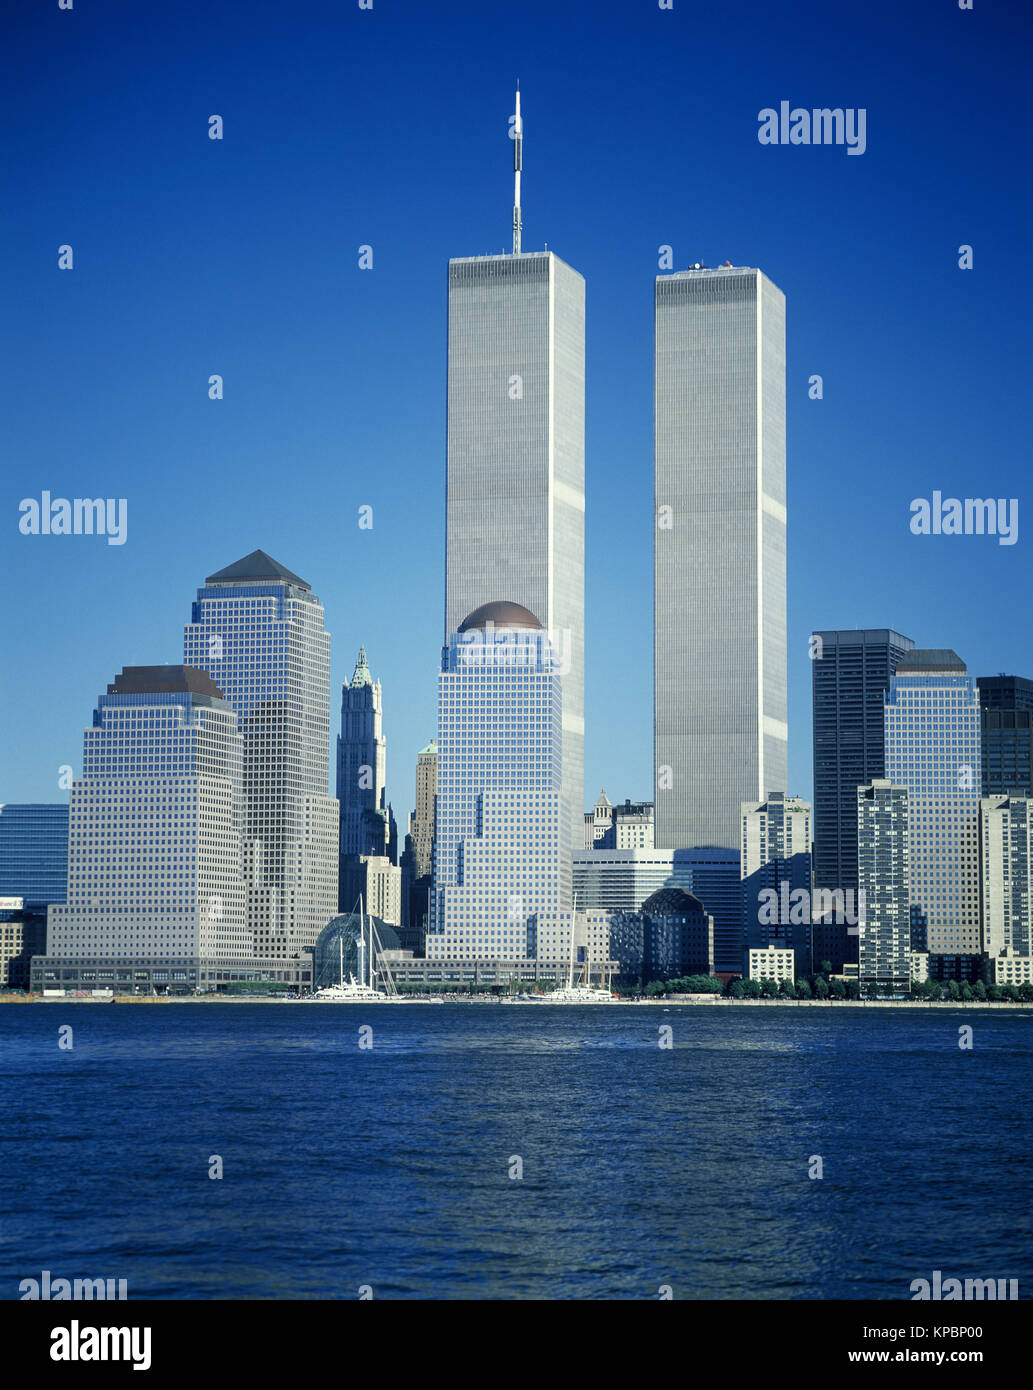 T1989 HISTORICAL TWIN TOWERS (©MINORU YAMASAKI 1973) DOWNTOWN SKYLINE HUDSON RIVER MANHATTAN NEW YORK CITY USA Stock Photo